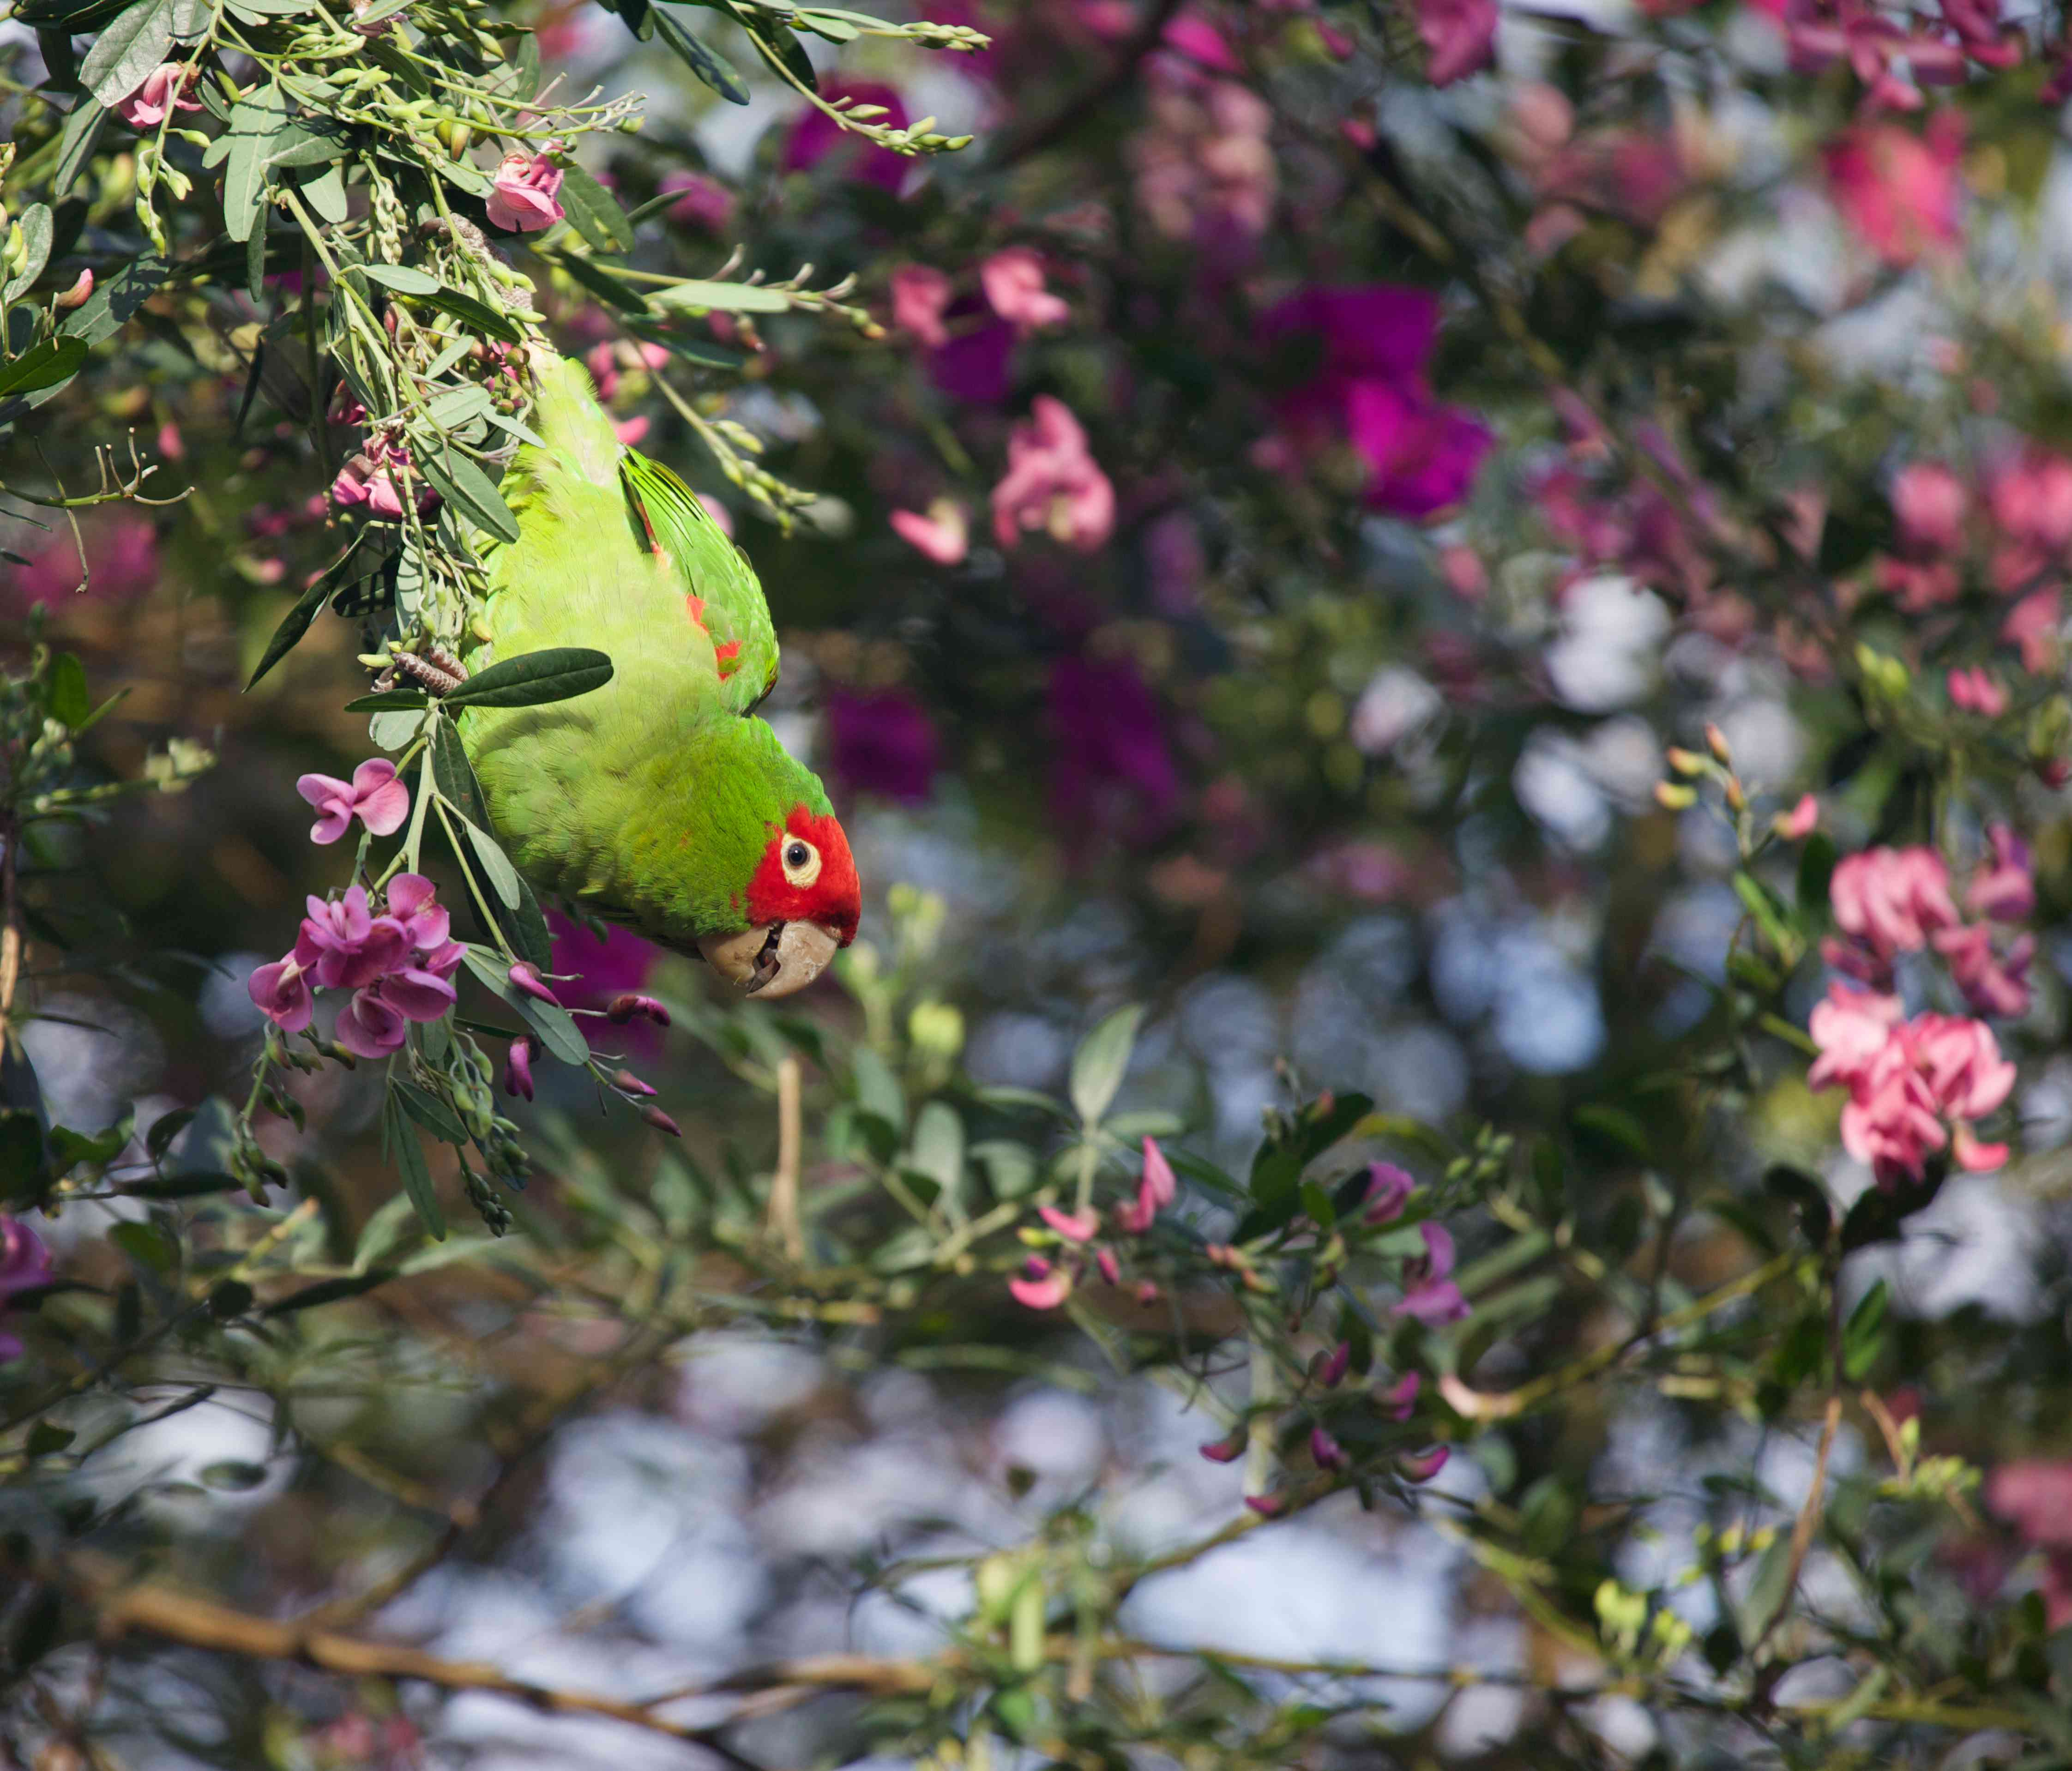 cherry-headed conure in a tree red parrot birds by thevetscare.com